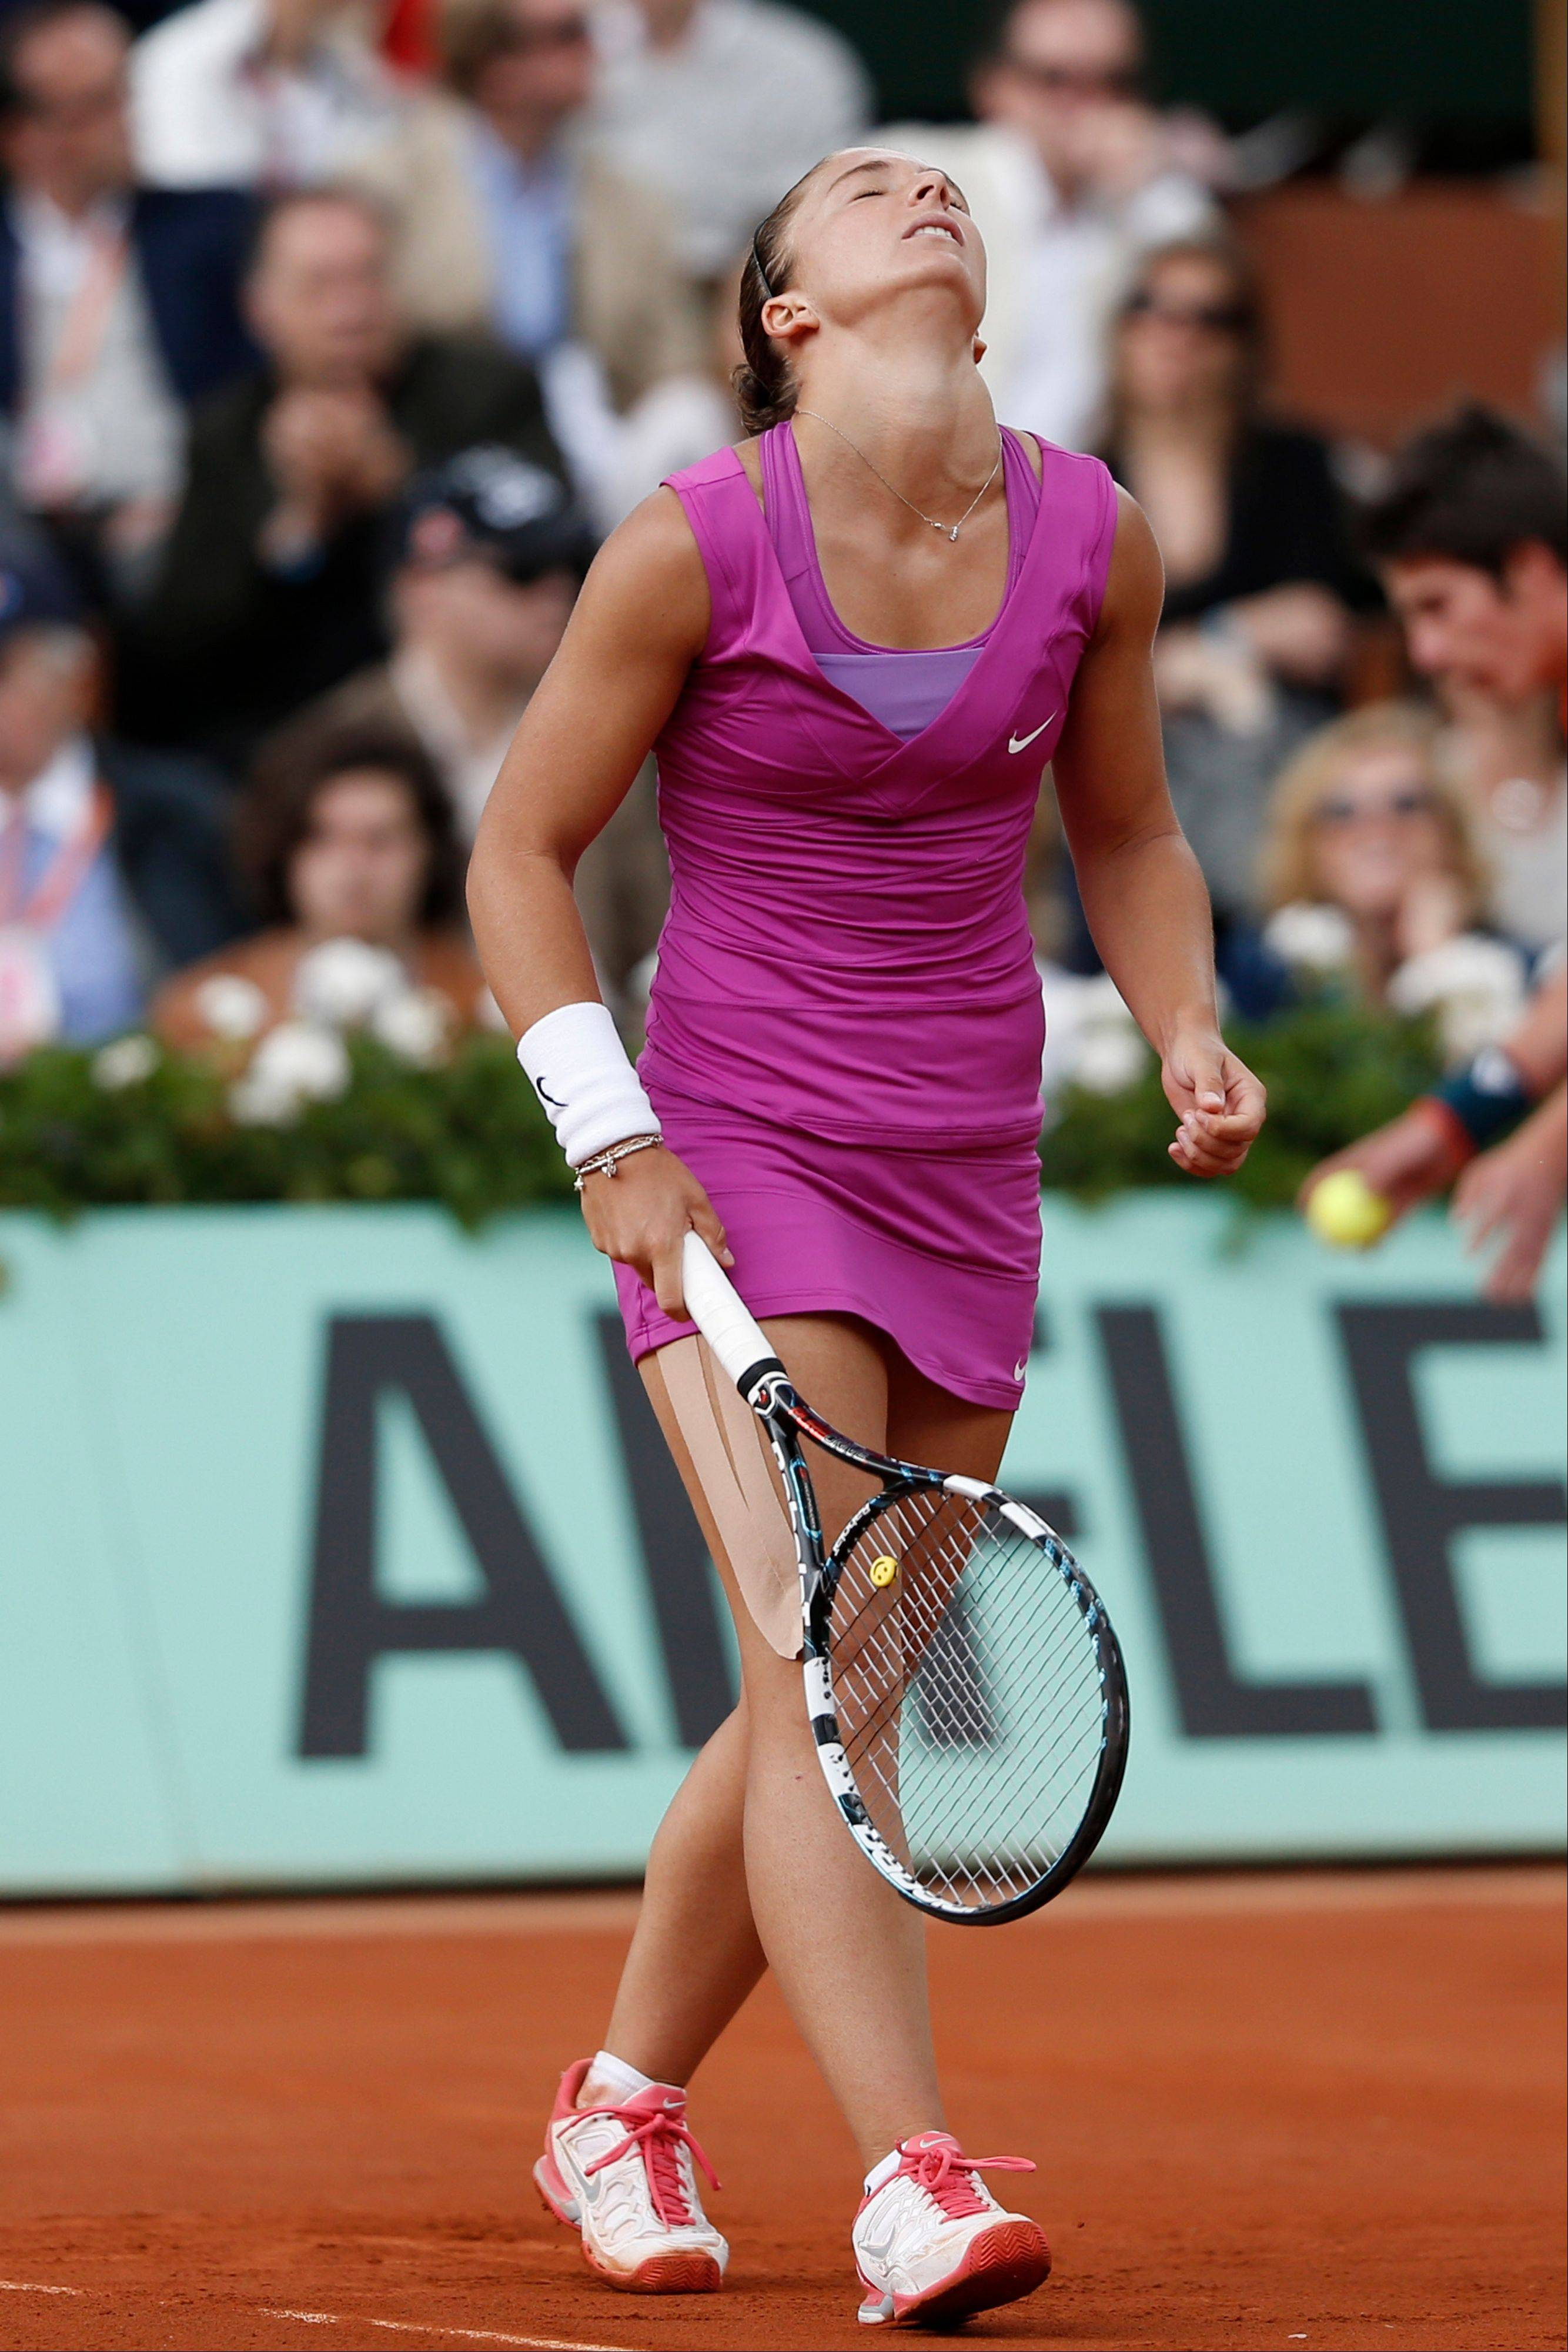 Sara Errani reacts after missing a return.